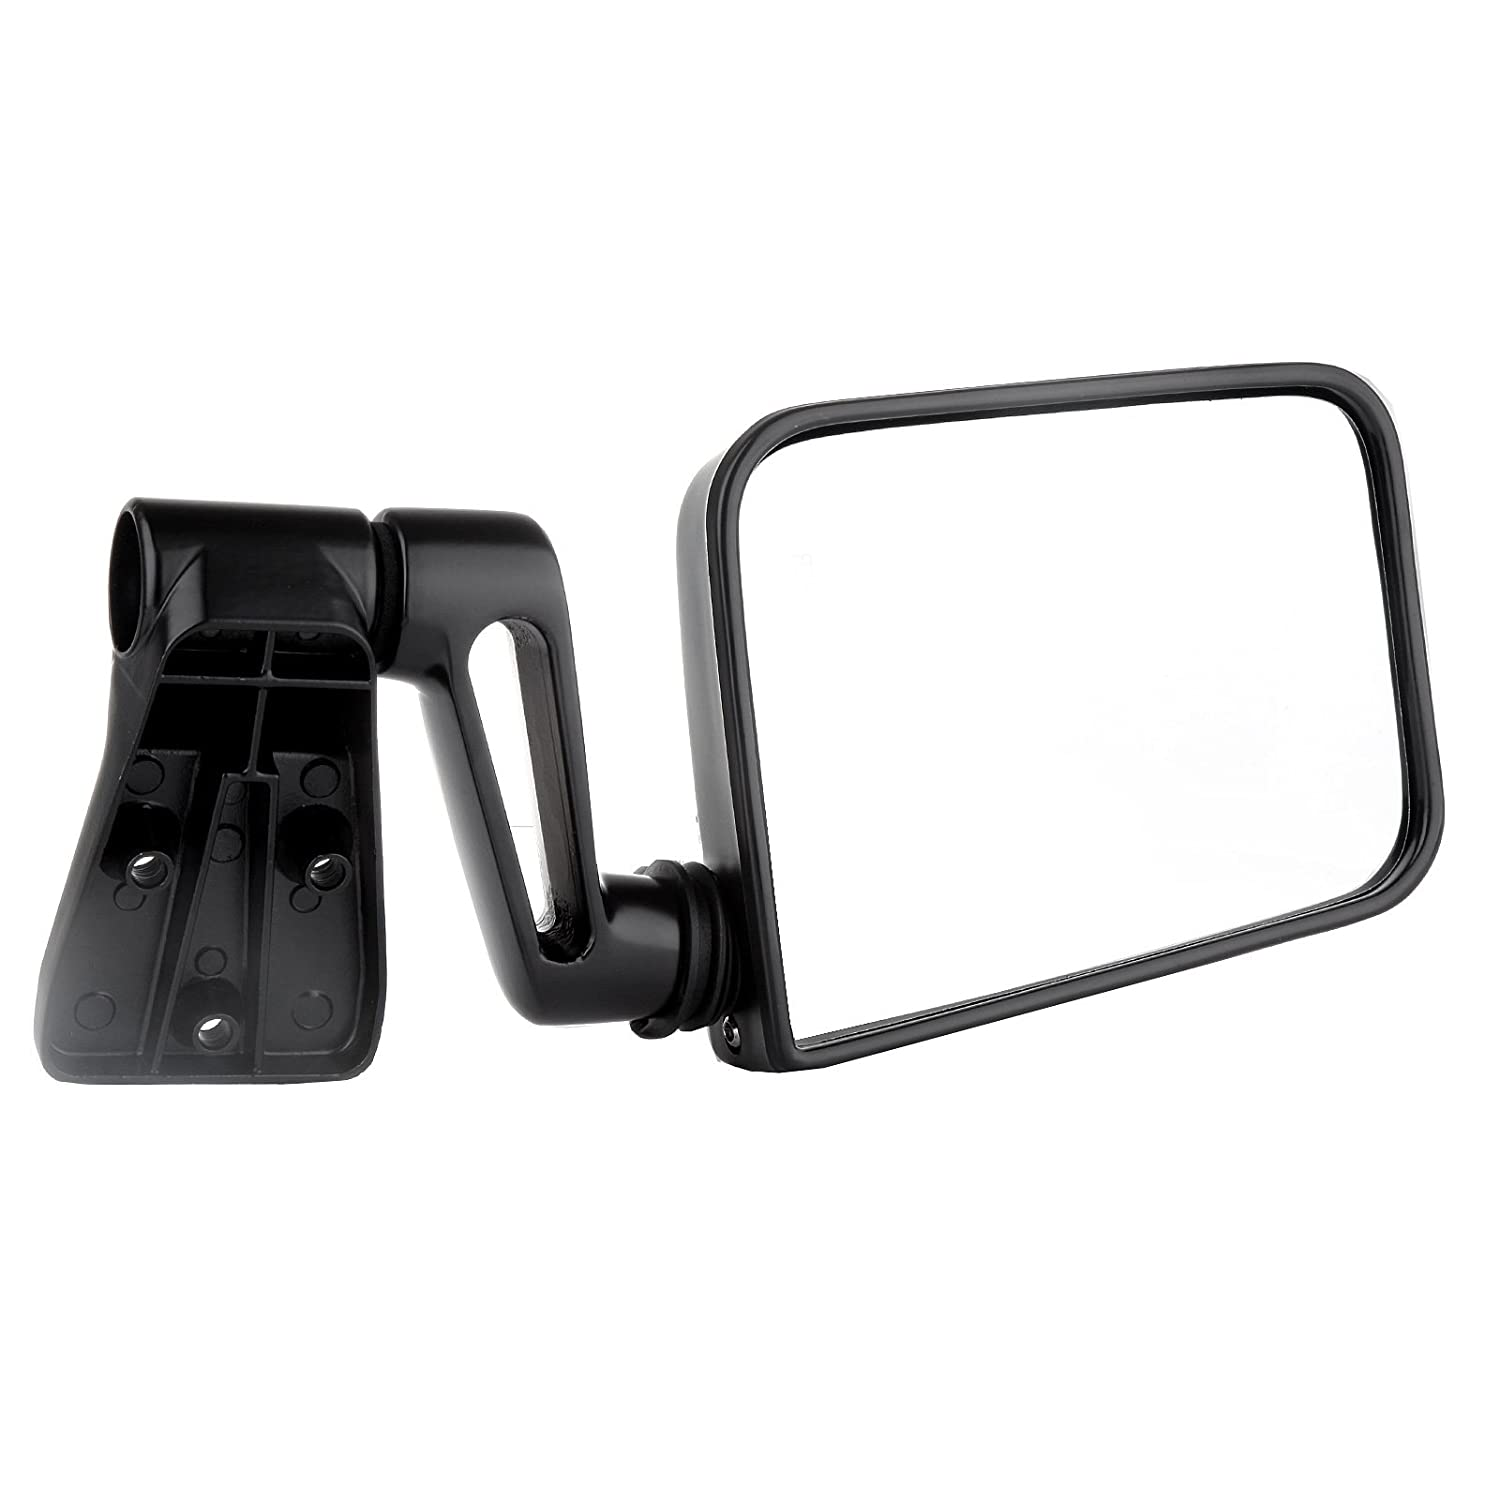 Towing Mirrors, for Jeep SCITOO Exterior Accessories Mirrors for 1987-2002 Jeep Wrangler with Manual Controlling Features - Pair